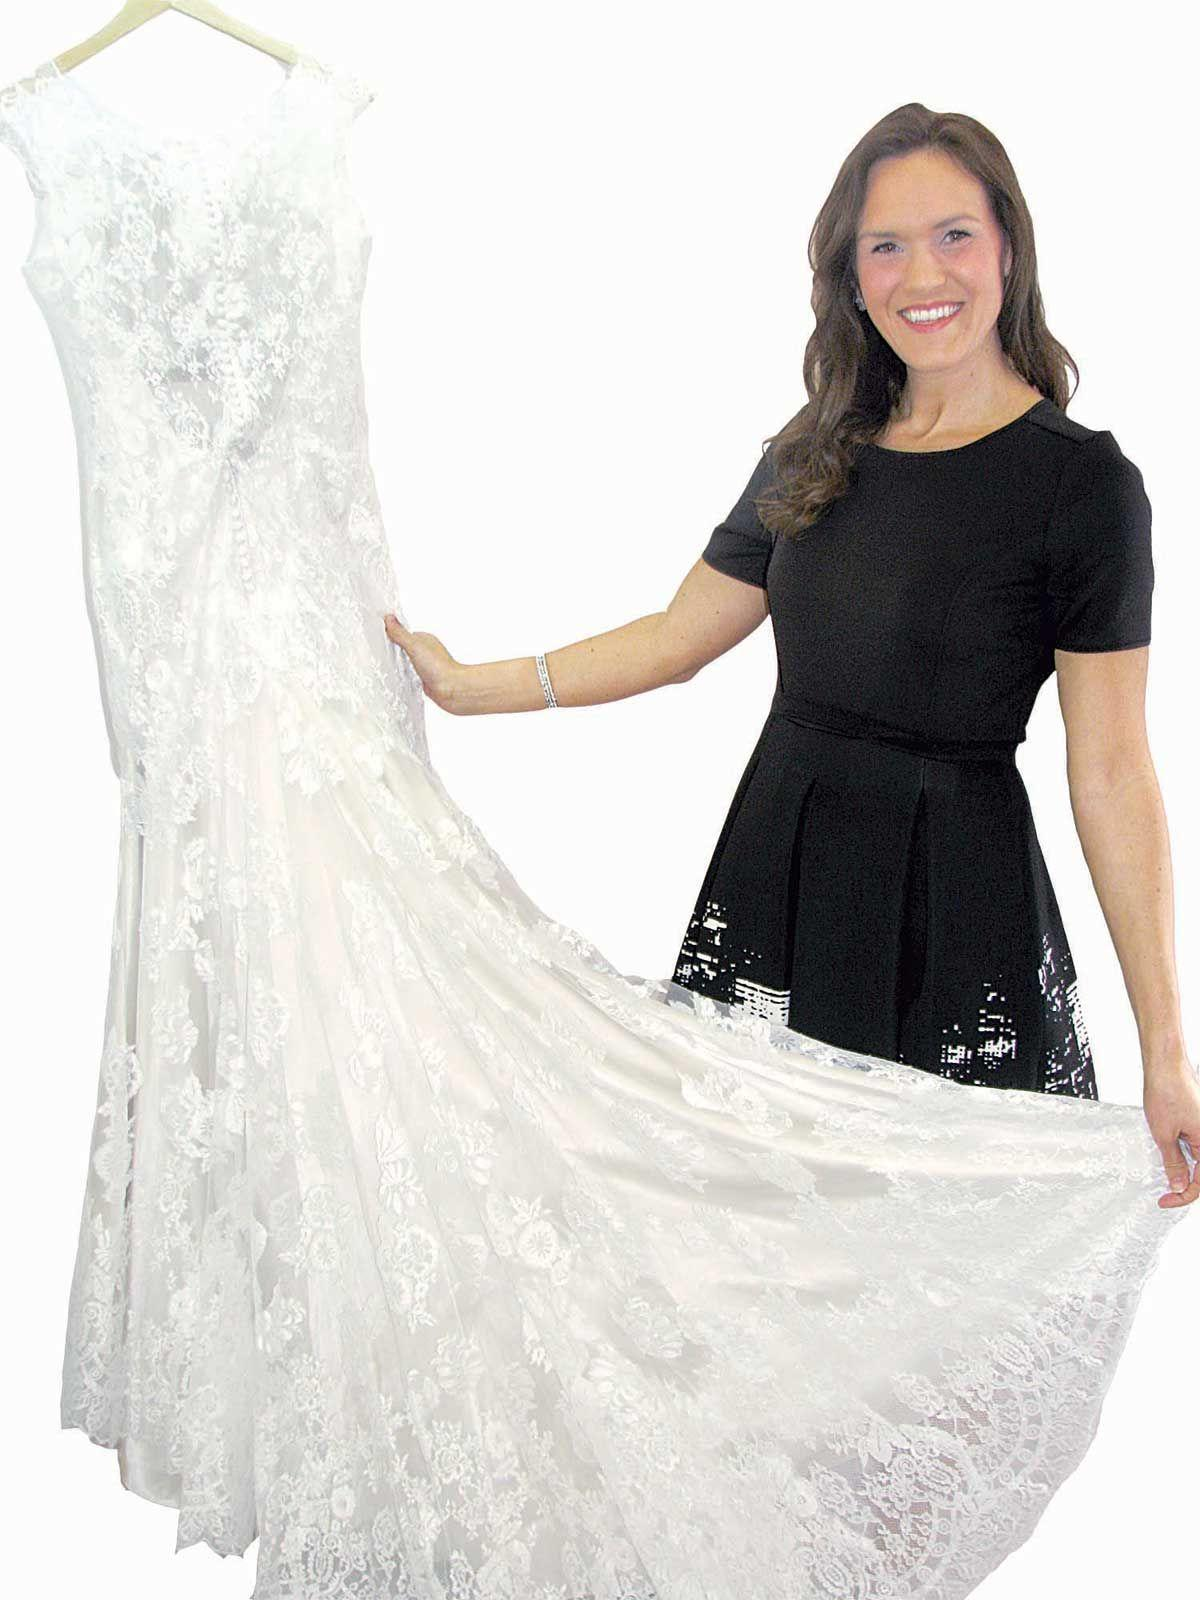 Sisters team up to open a bridal and formal wear shop | Business ...